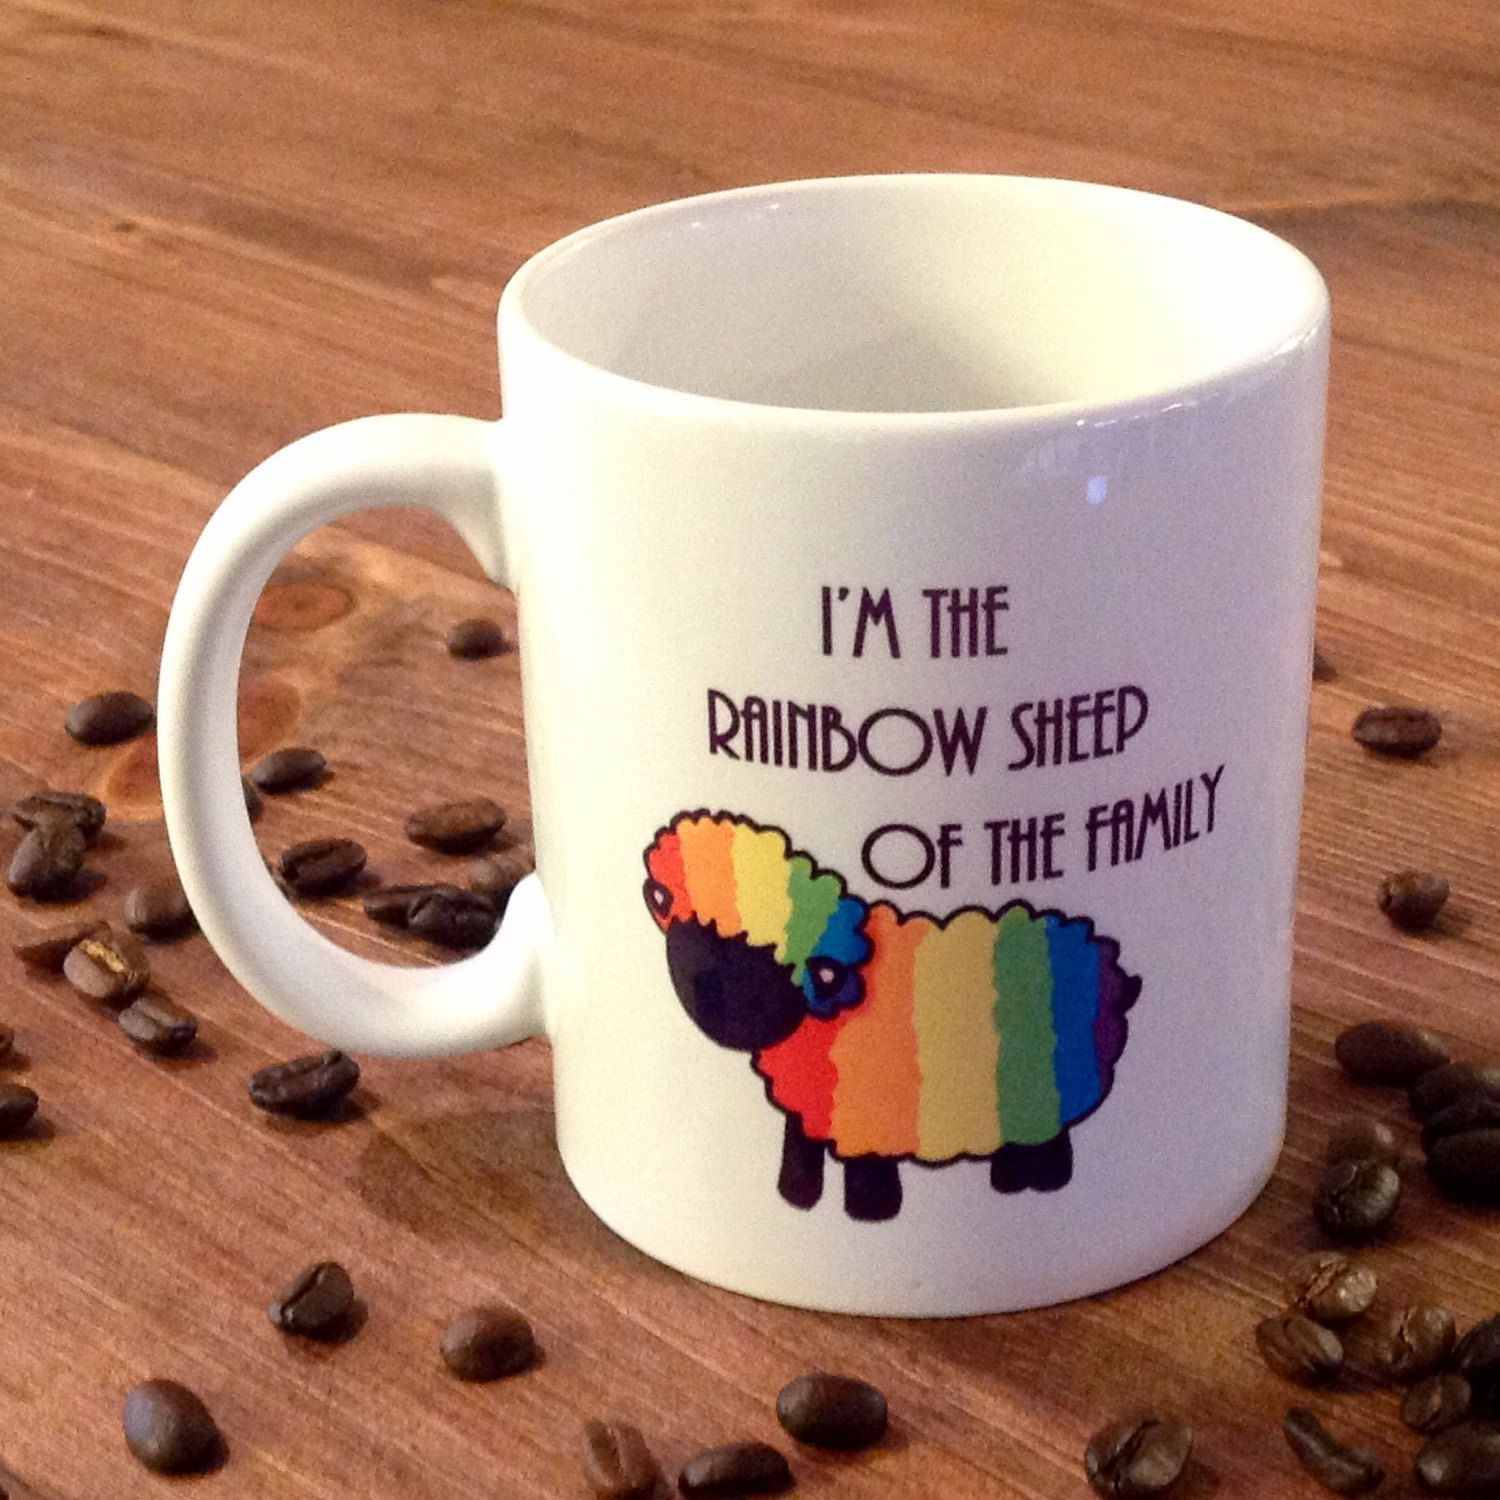 Pin by Sarah Biemuller on Coffee Crazed Funny coffee